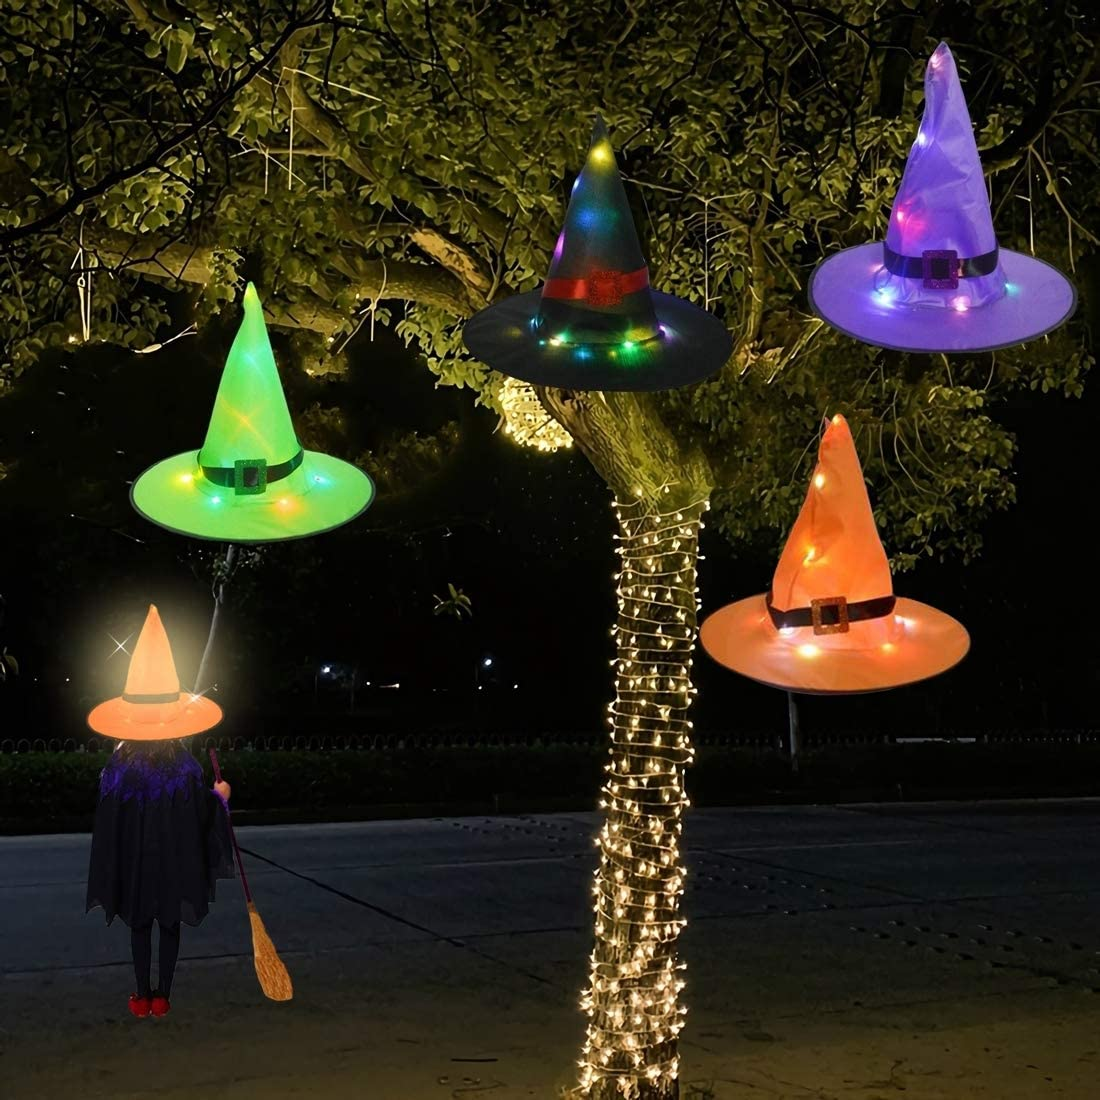 7mohugme Halloween Decorations Witch Hat Outdoor 4Pcs Hanging Lighted Glowing Witch Hat Decorations Halloween Lights String Battery Operated Halloween Decor for Outdoor, Yard, Tree